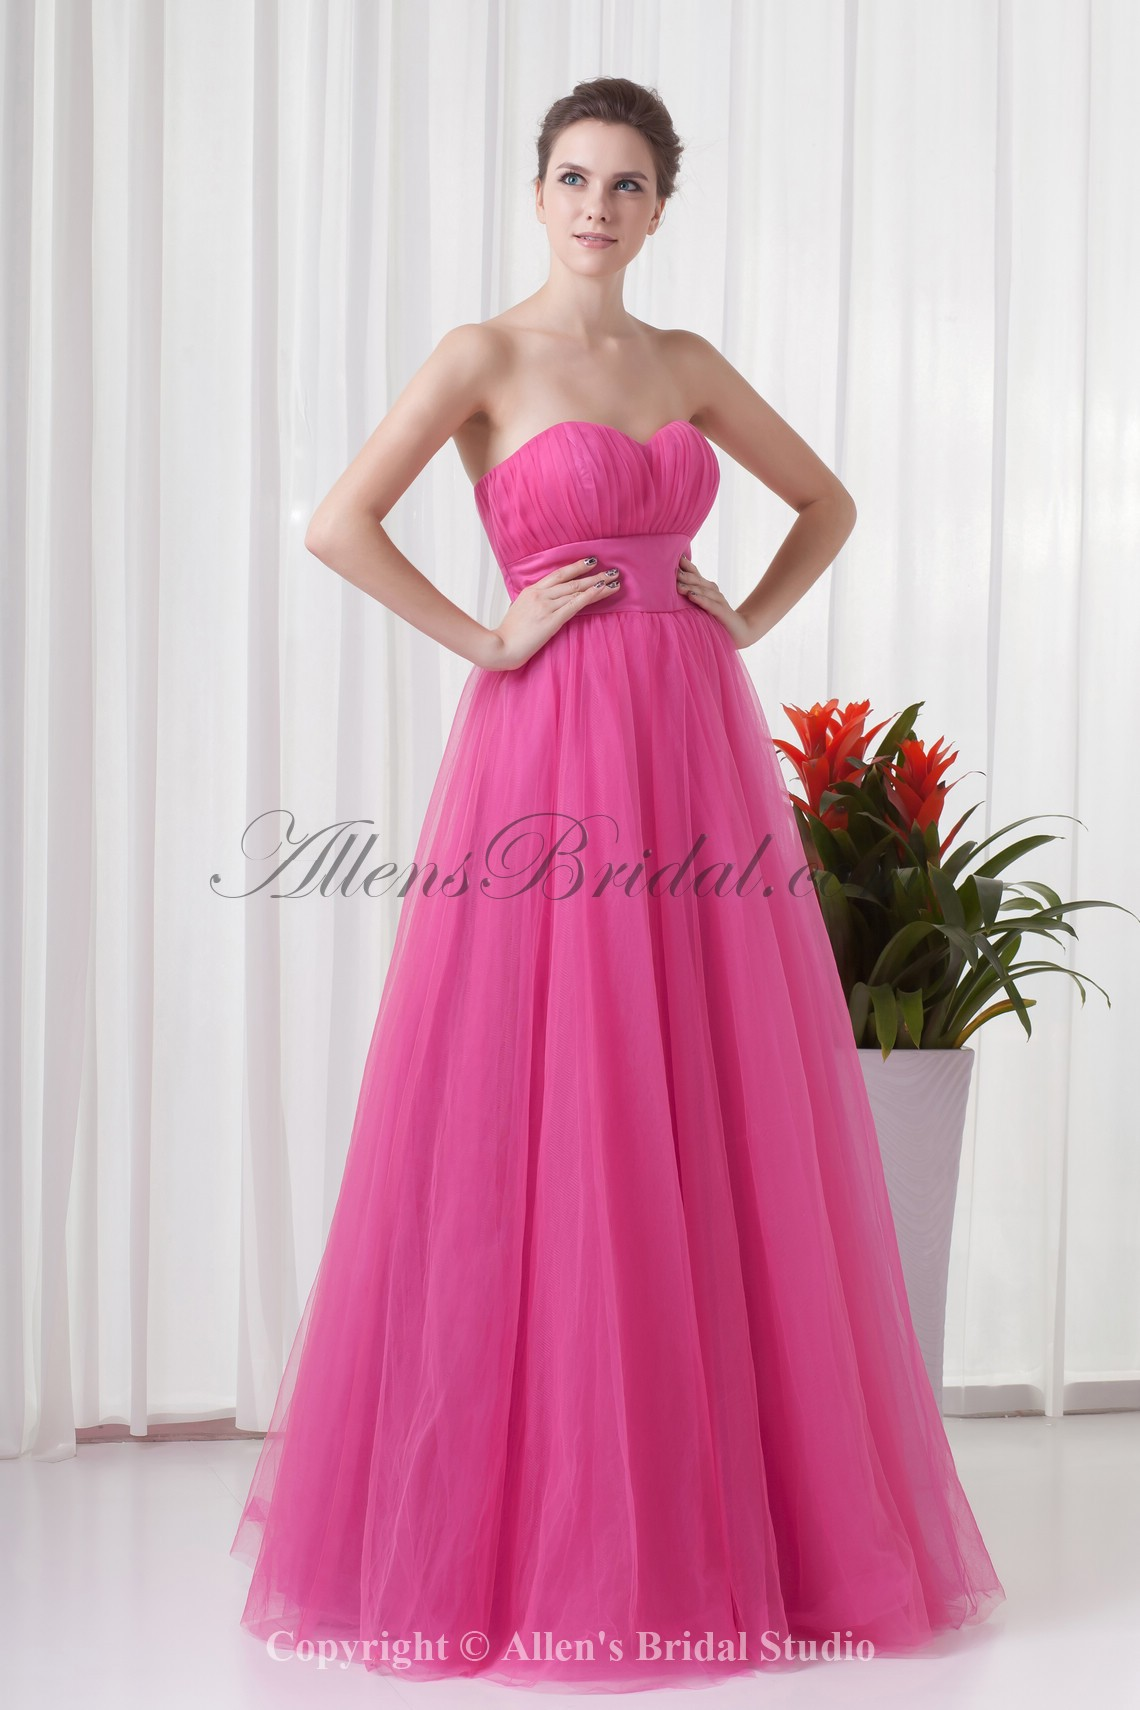 /305-2436/net-sweetheart-neckline-a-line-floor-length-sash-prom-dress.jpg